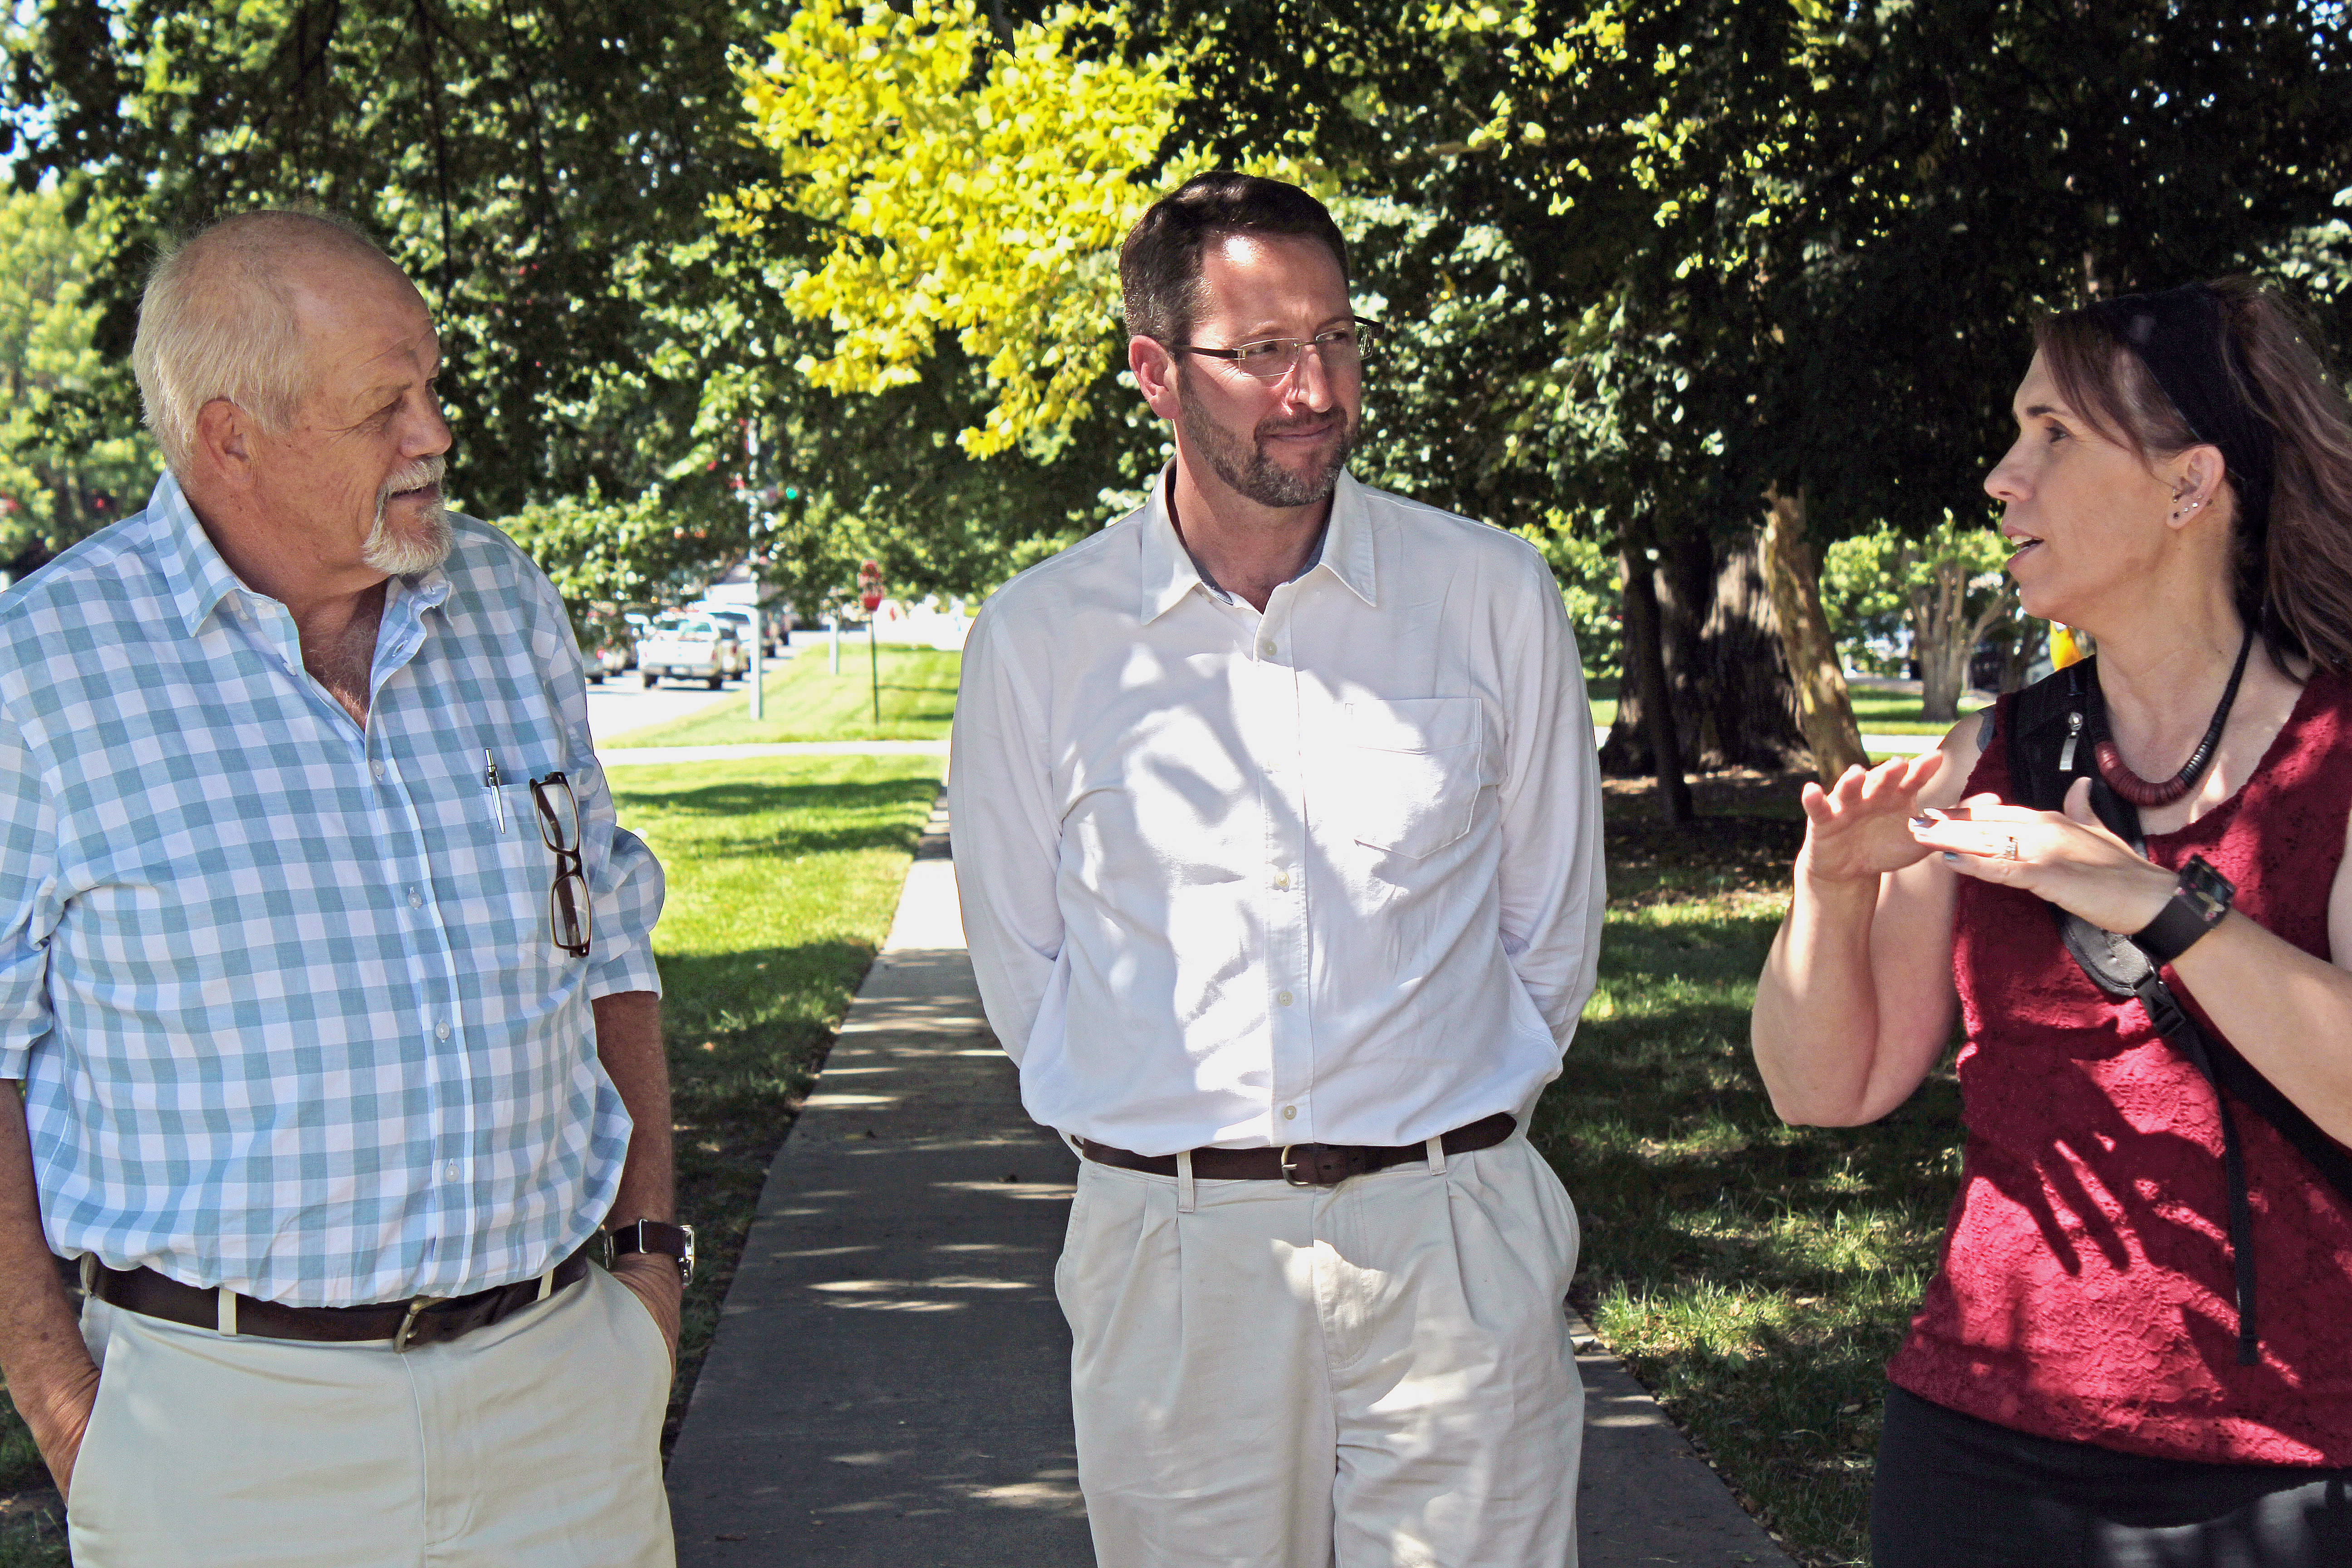 Andries Jordaan, left, and Janse Robie, both of disaster management agencies in South Africa, talk with NDMC climatologist Deborah Bathke during a recent visit to learn about the center's available tools. | NDMC